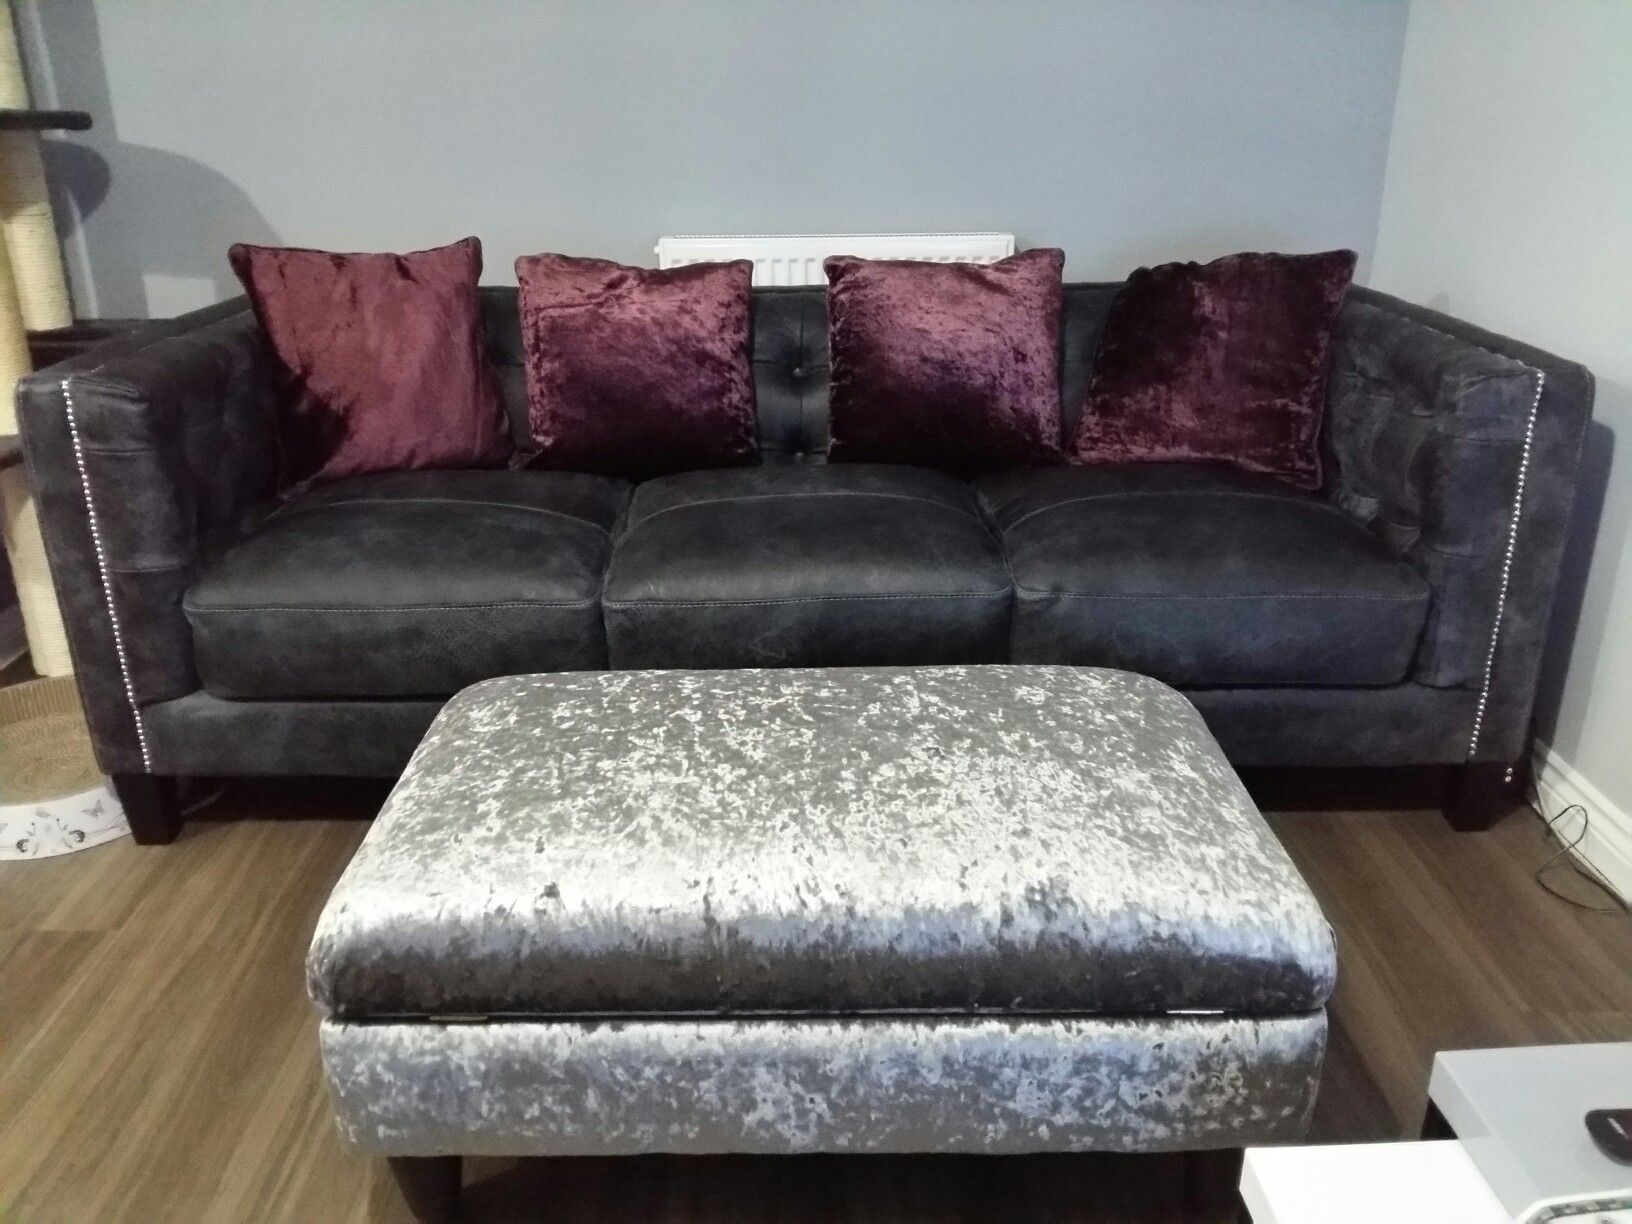 Dfs Duke leather sofa mydfs Etoile footstool House